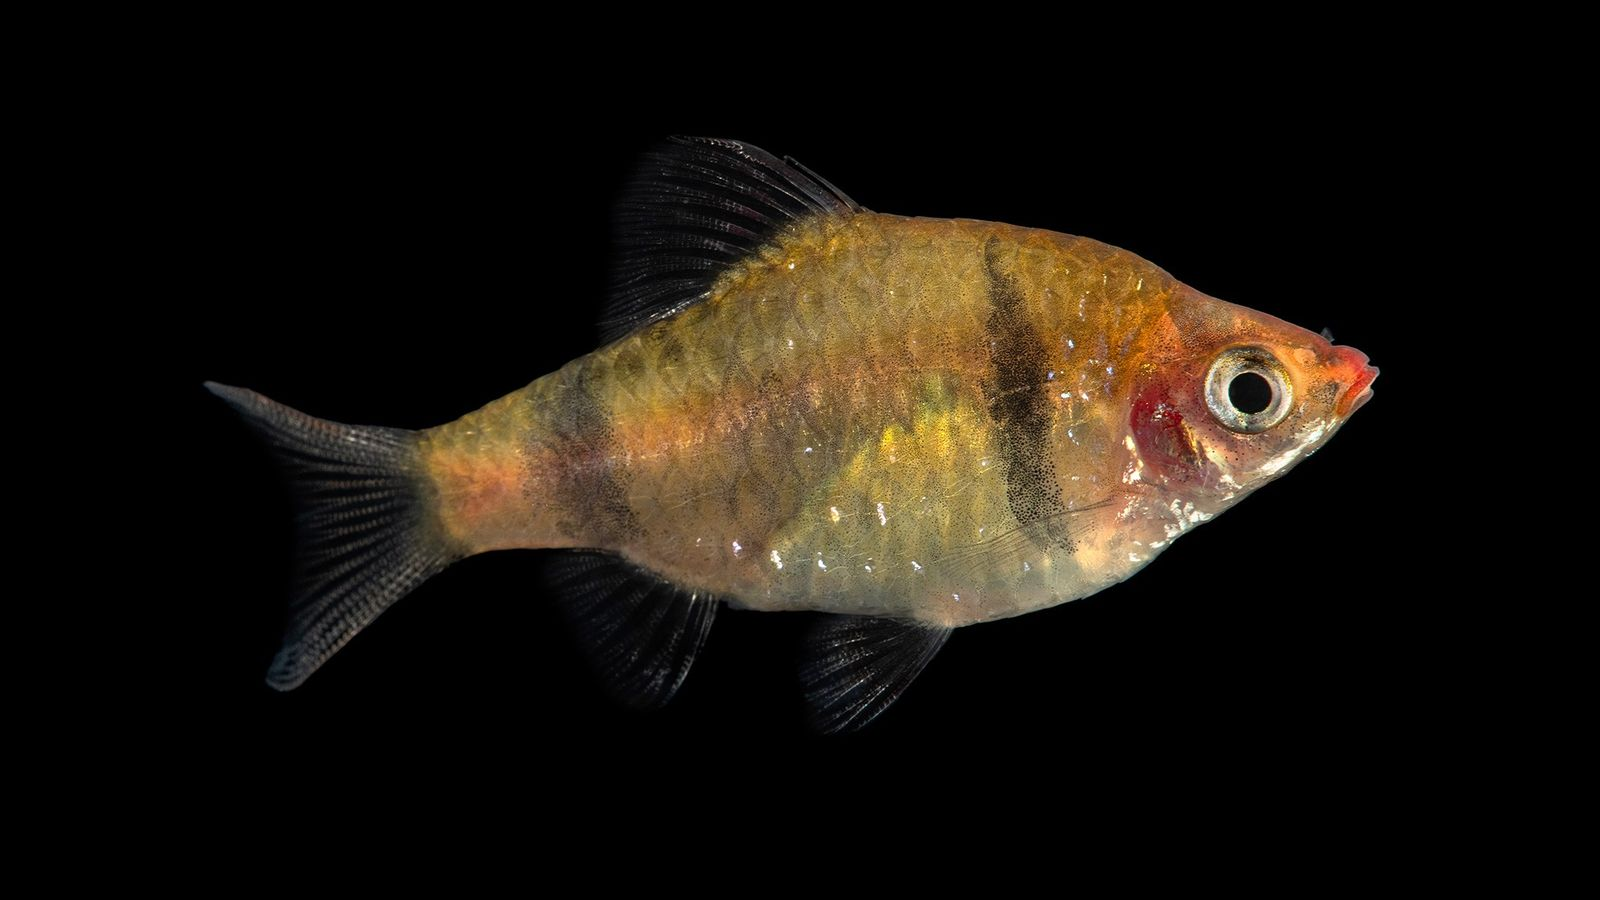 The Bandula barb, 'Pethia bandula', photographed at Zoo Plzeň in the Czech Republic. This freshwater fish ...